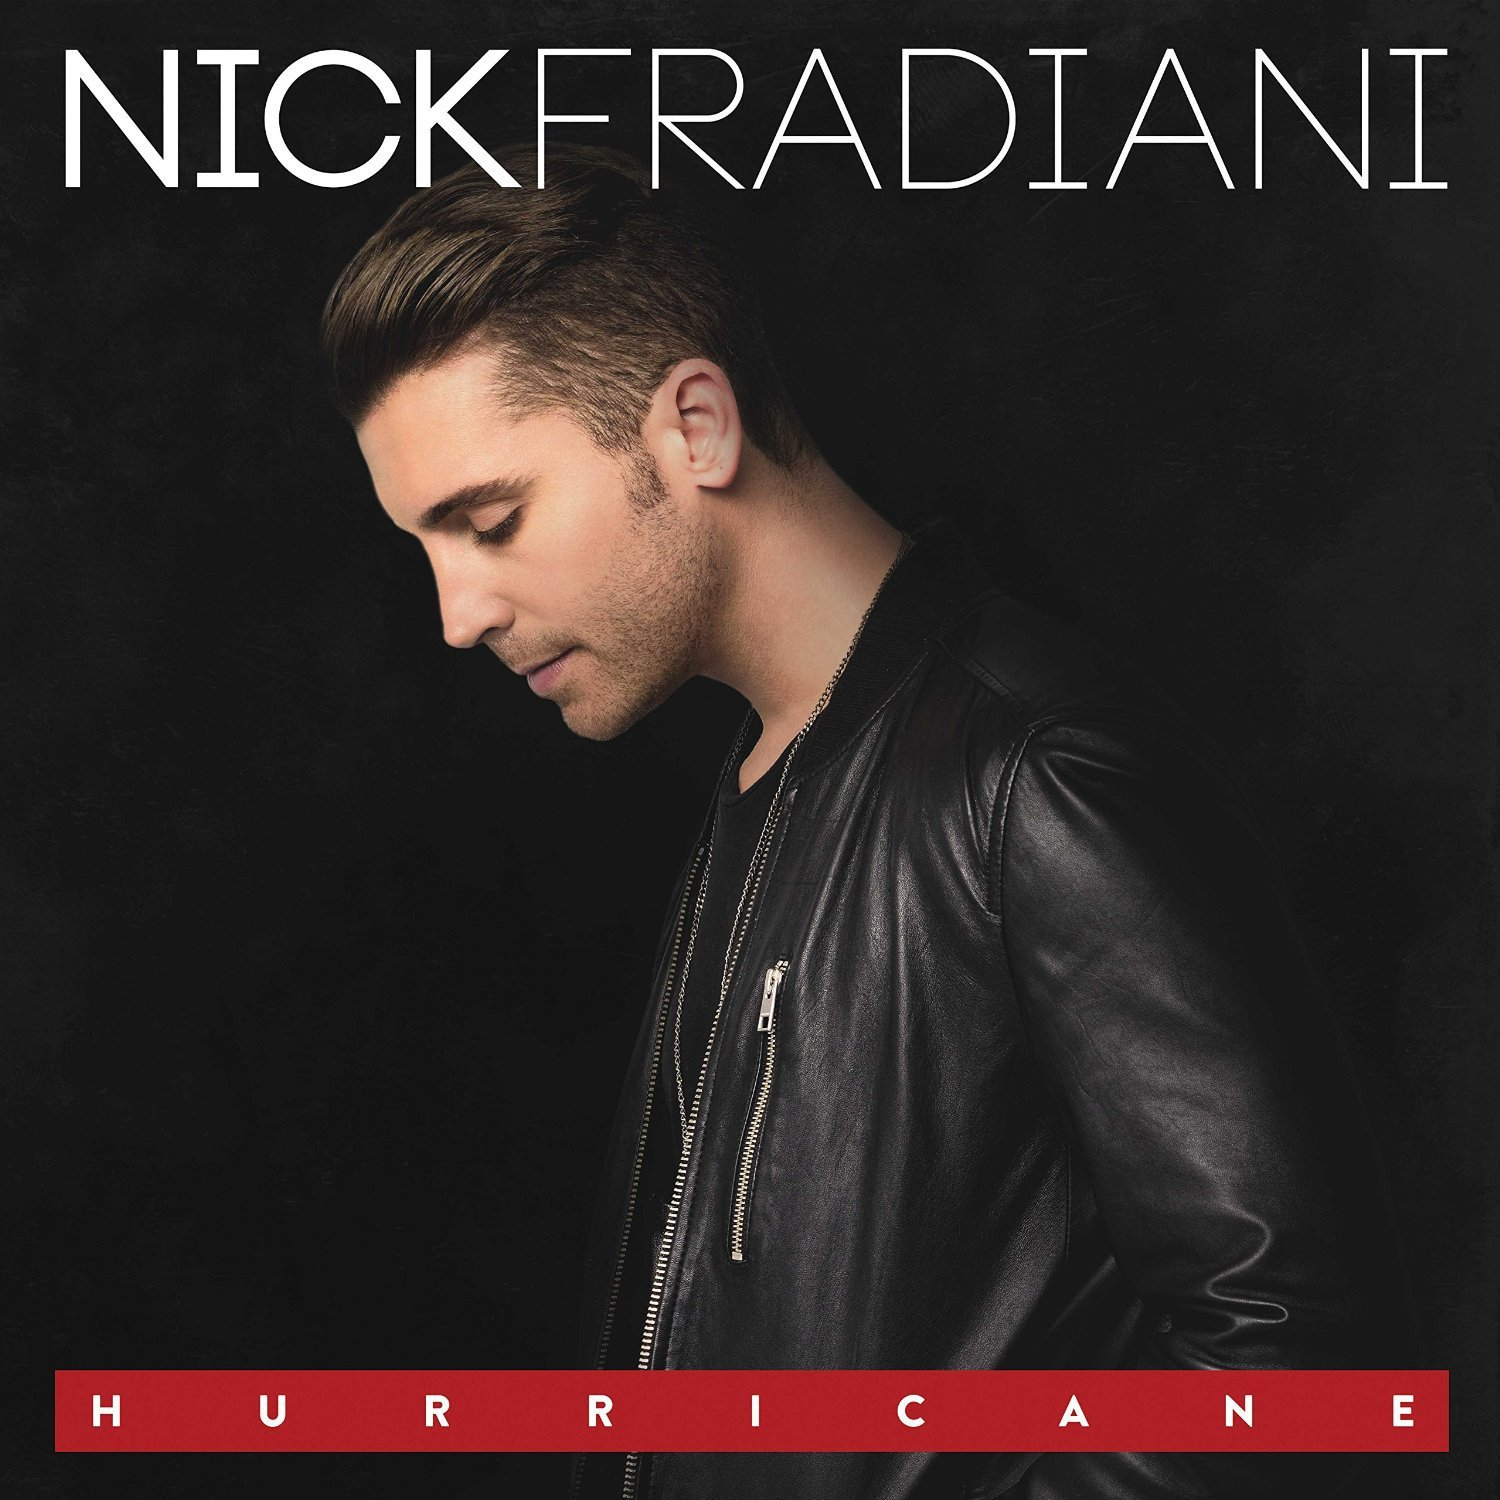 Nick Fradiani: Hurricane